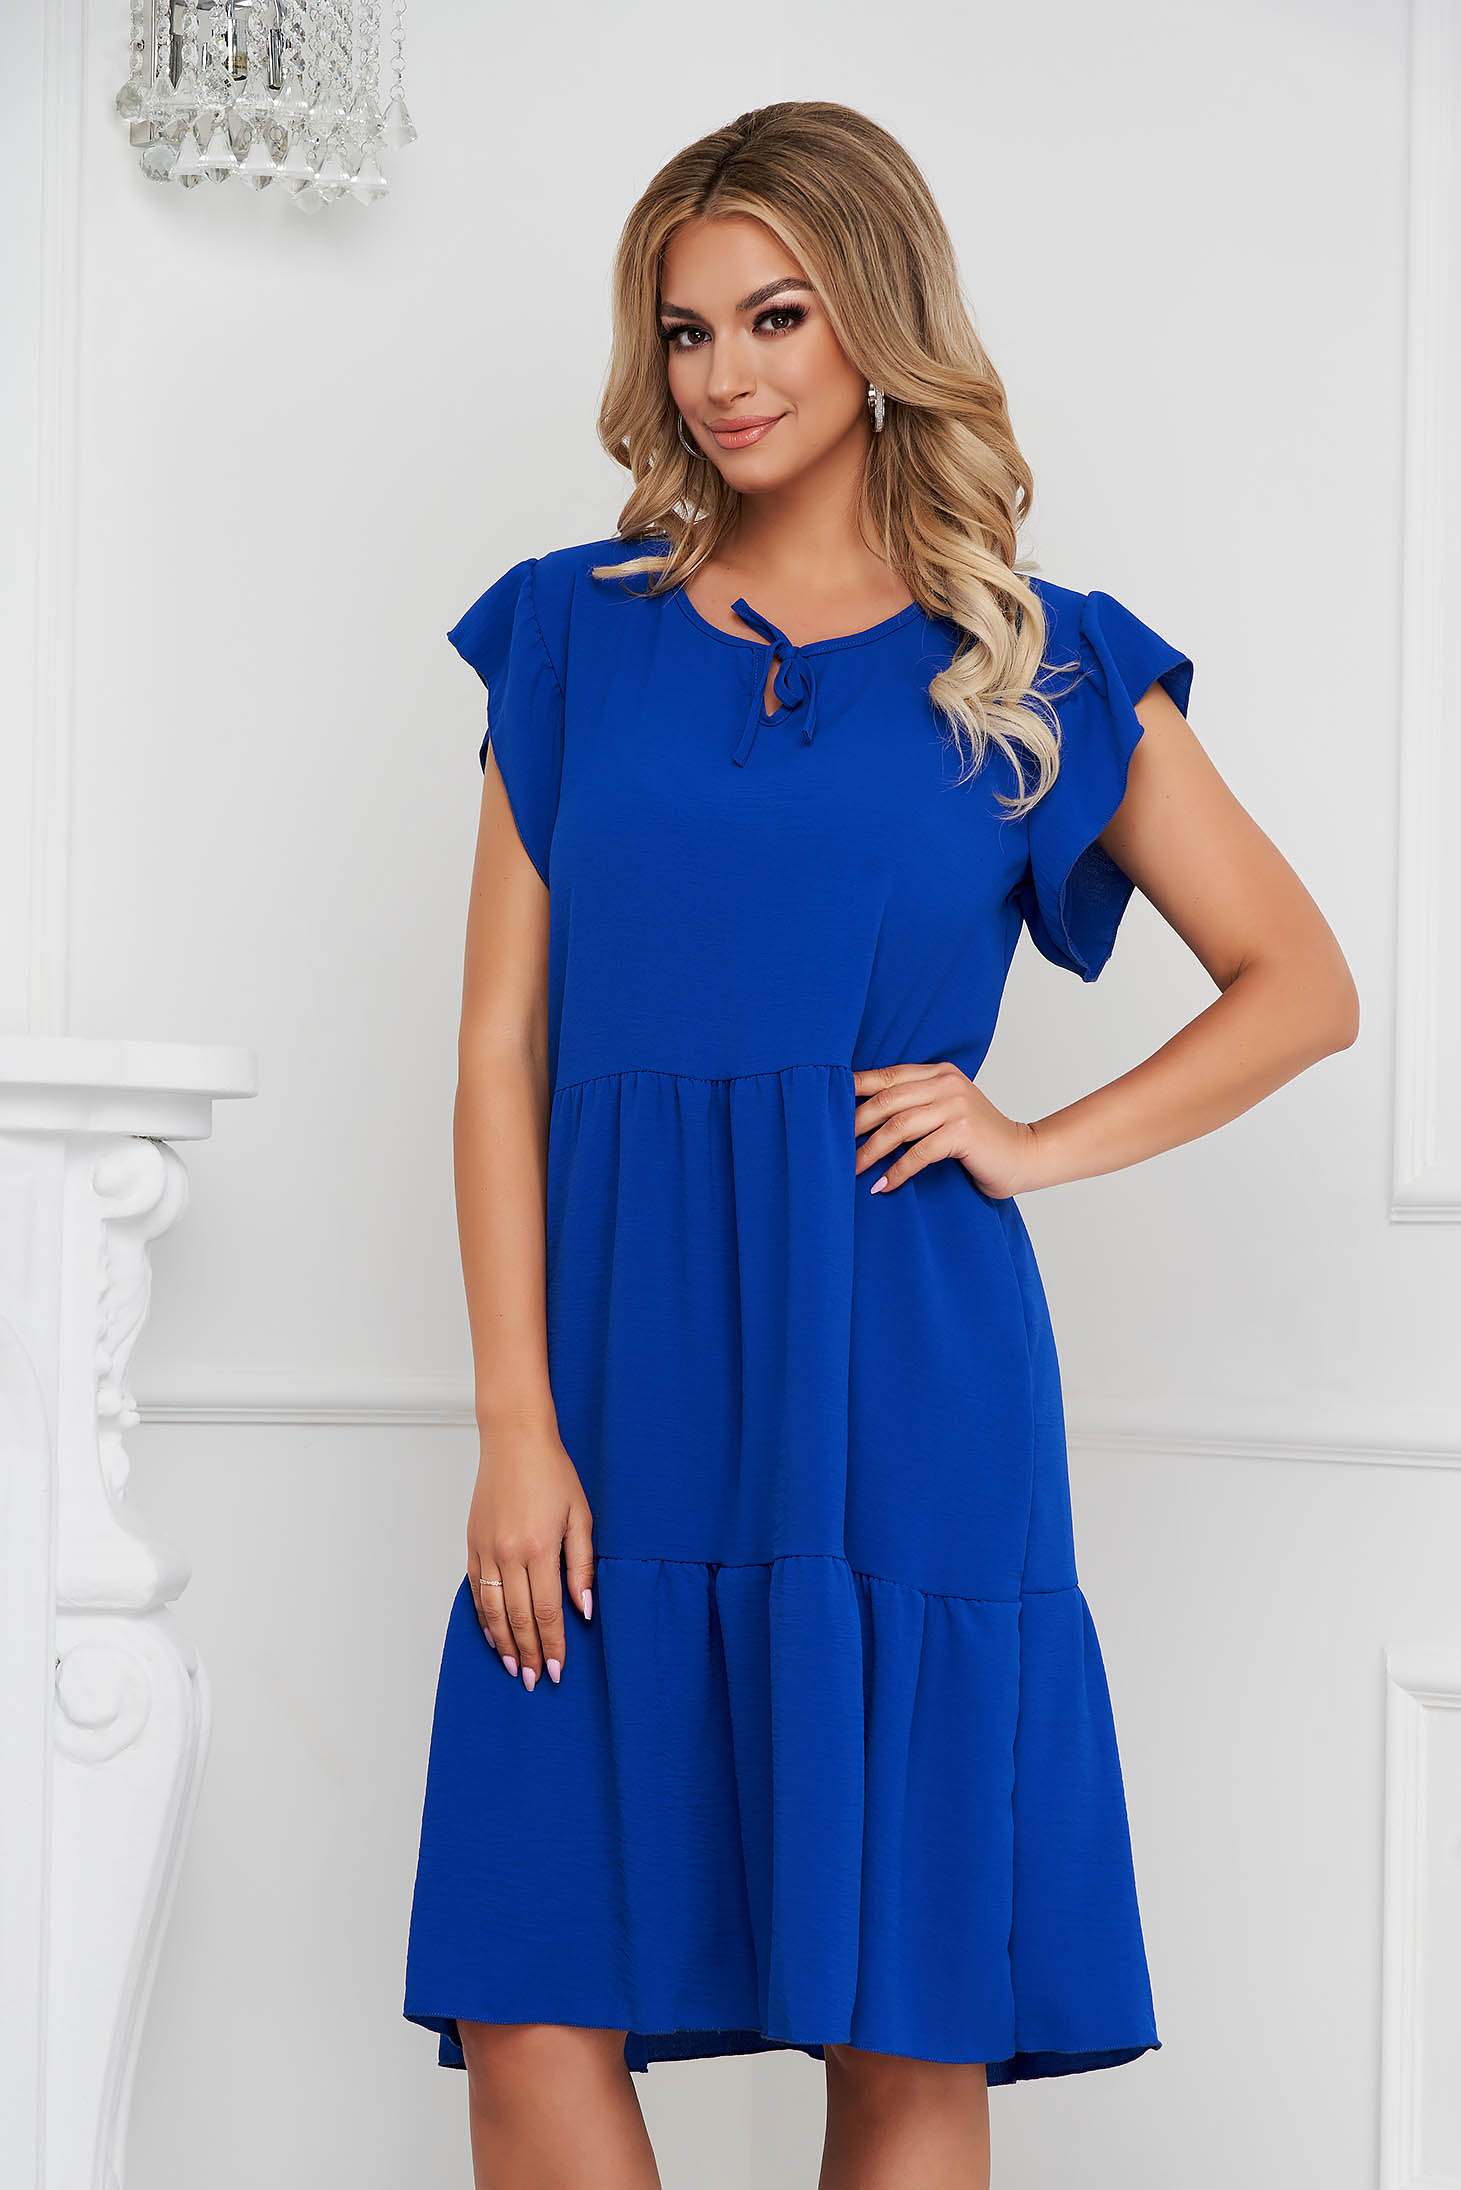 Blue dress midi loose fit airy fabric with ruffle details